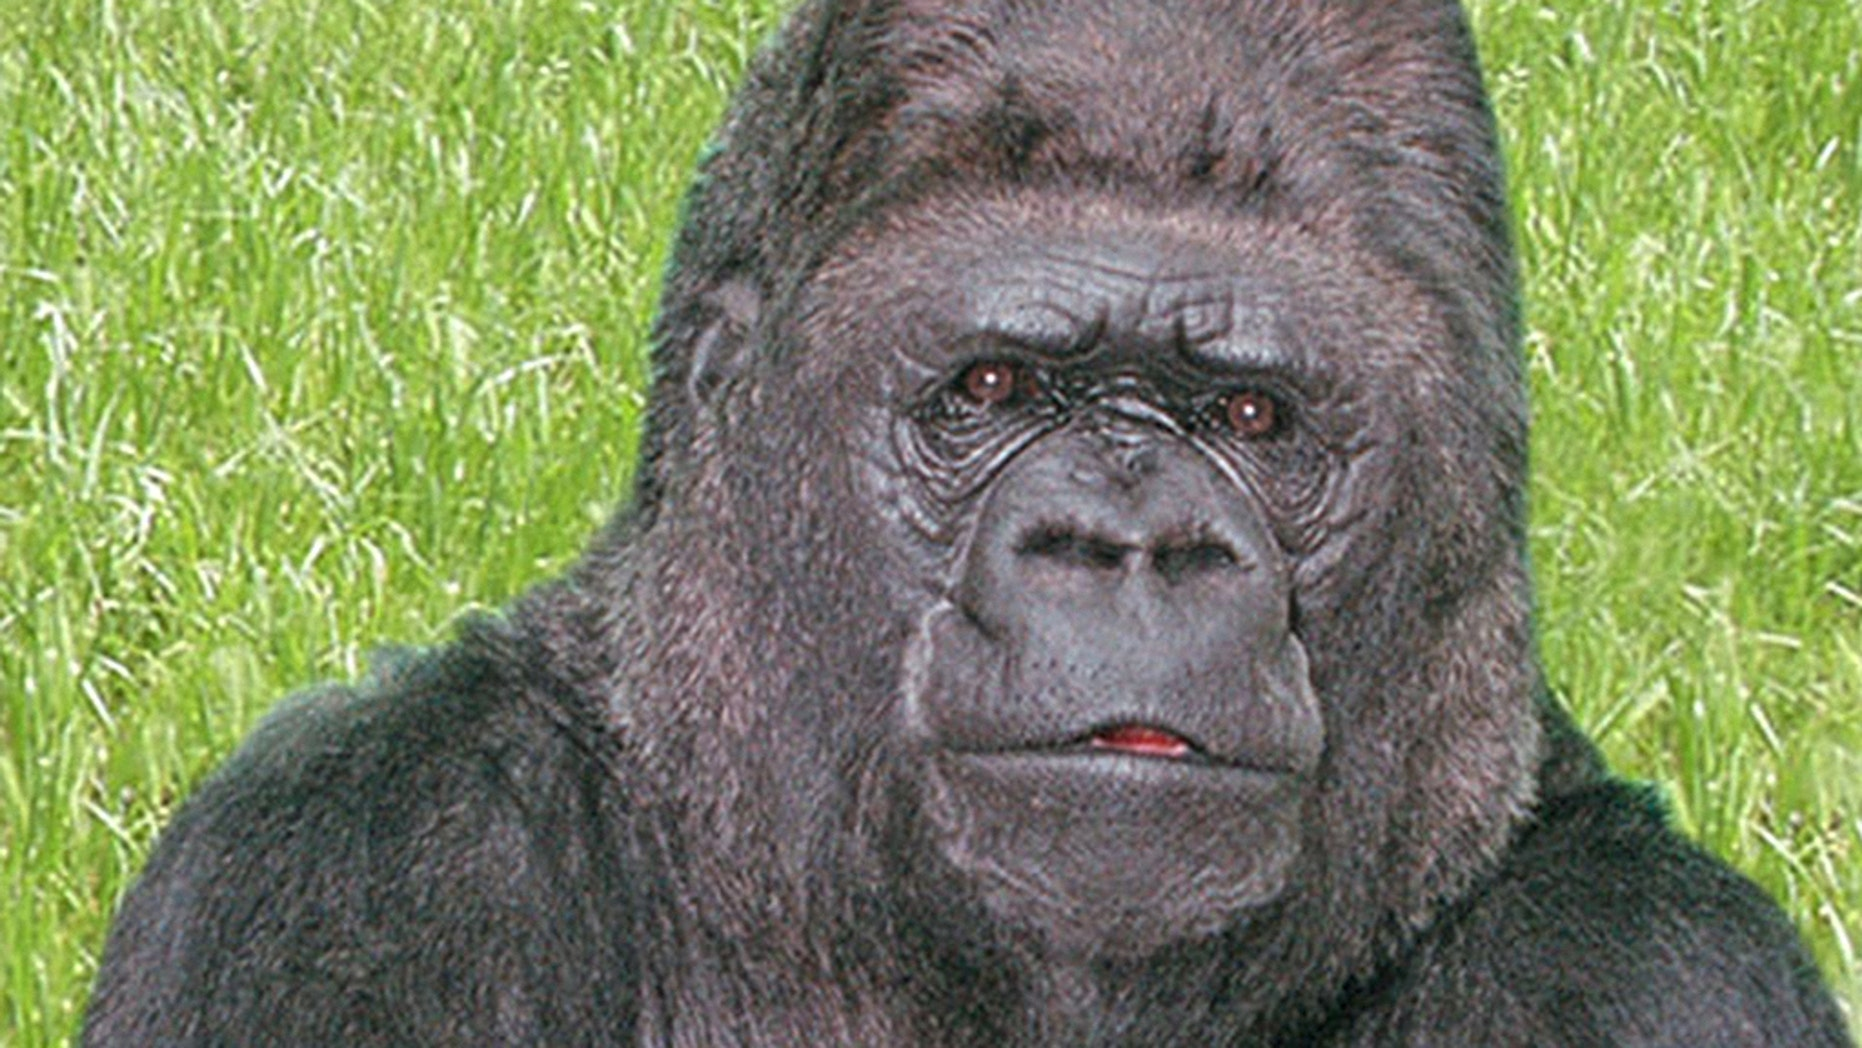 Koko, the gorilla who mastered sign language, has died age 46 in her sleep at the Gorilla Foundation's preserve in the Santa Cruz Mountains